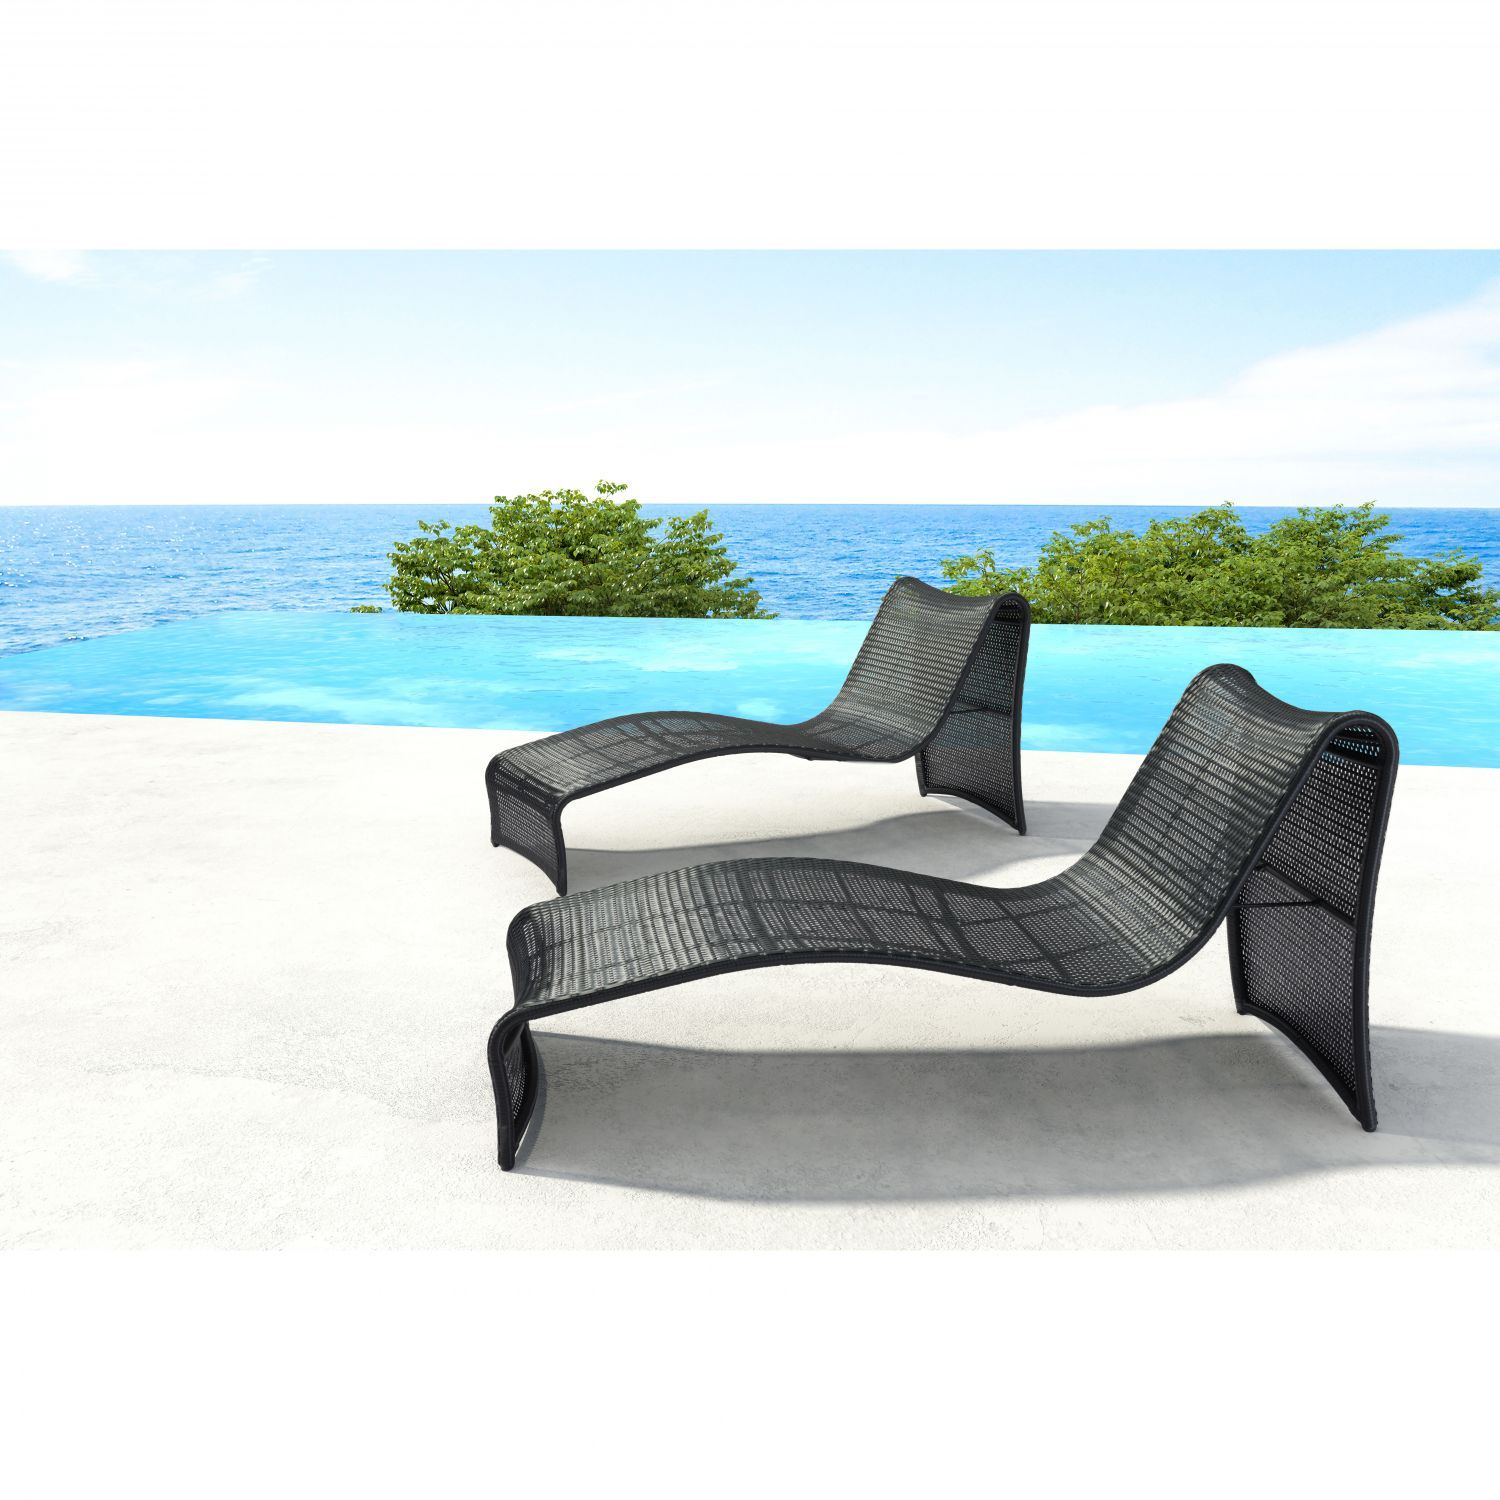 Rocky beach chaise lounge espresso 703842 zuo modern for Chaise lounge beach